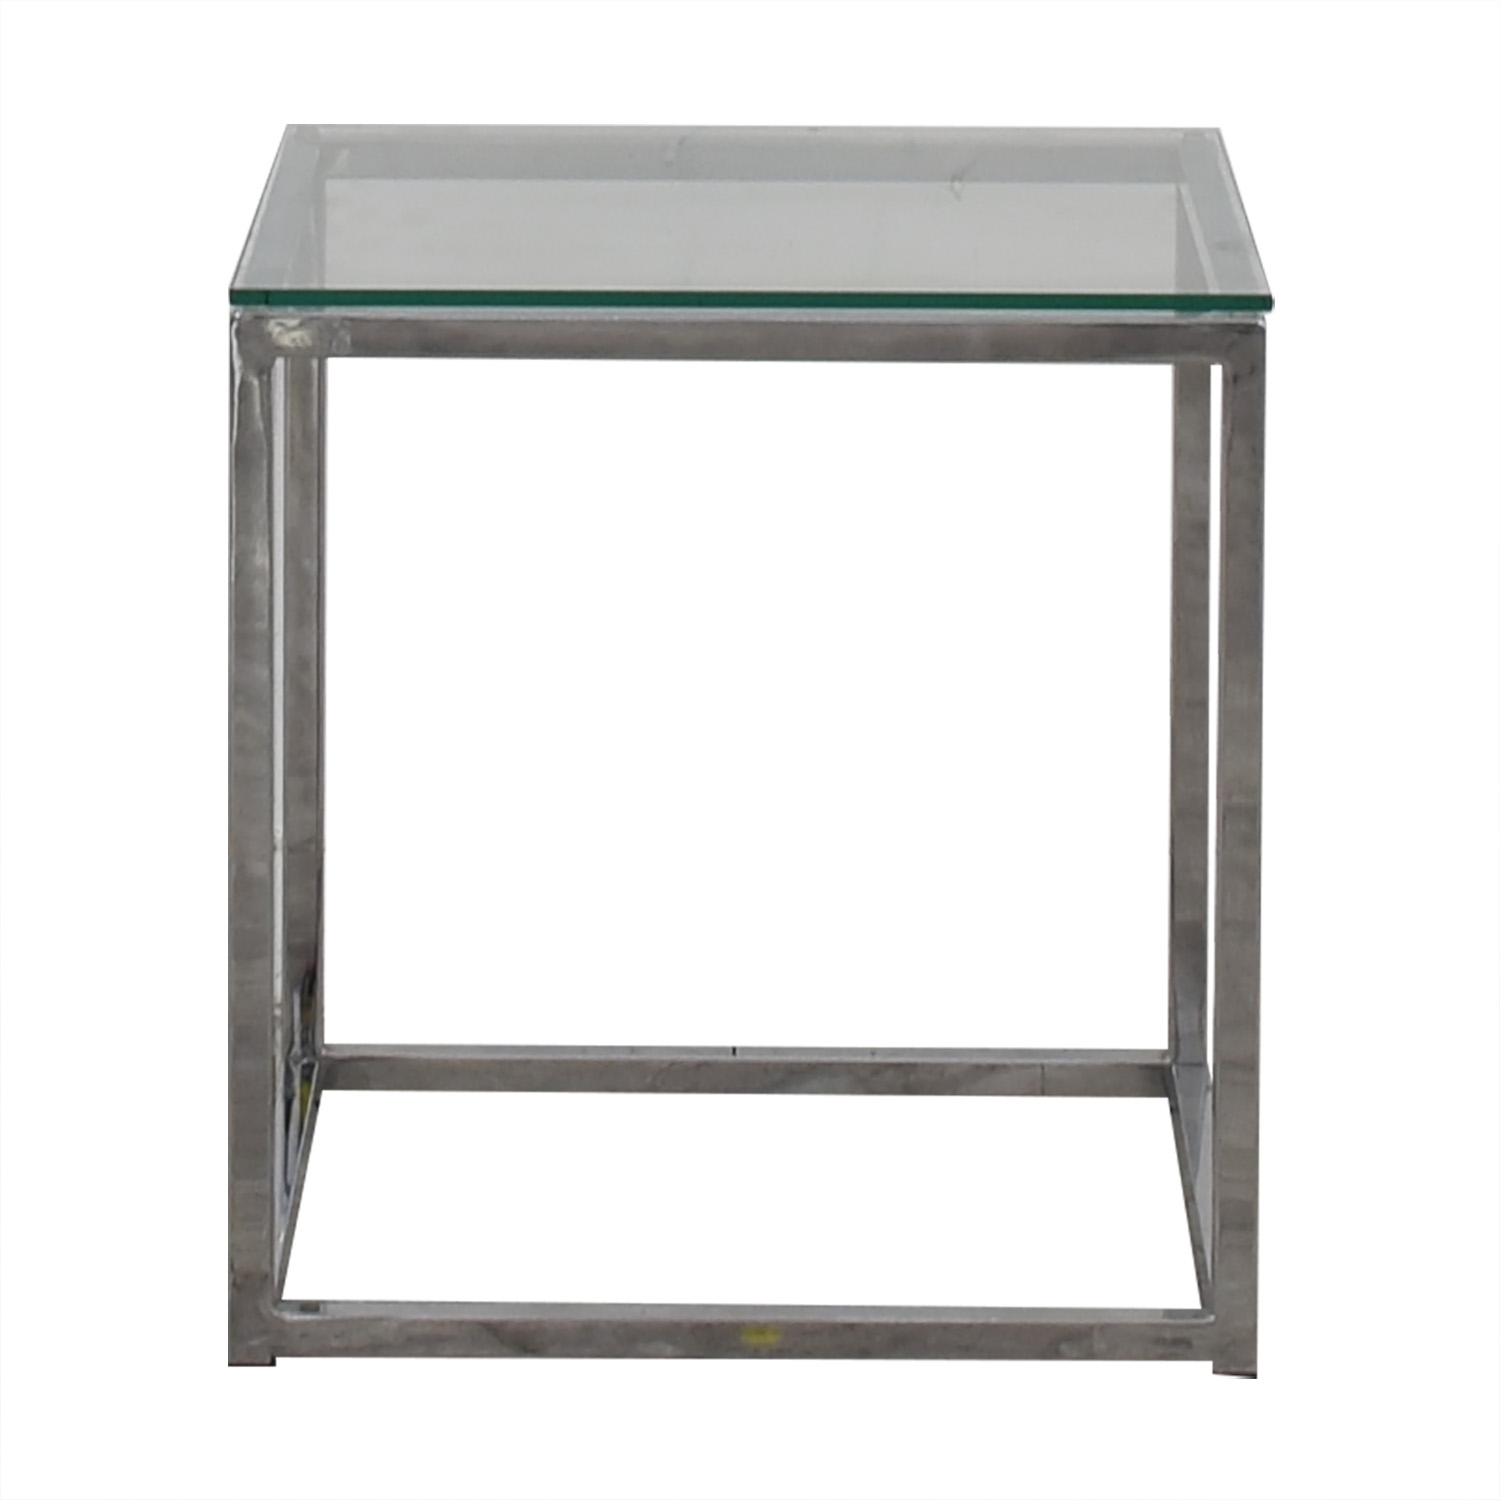 CB2 CB2 Smart Glass and Chrome Side Table Tables